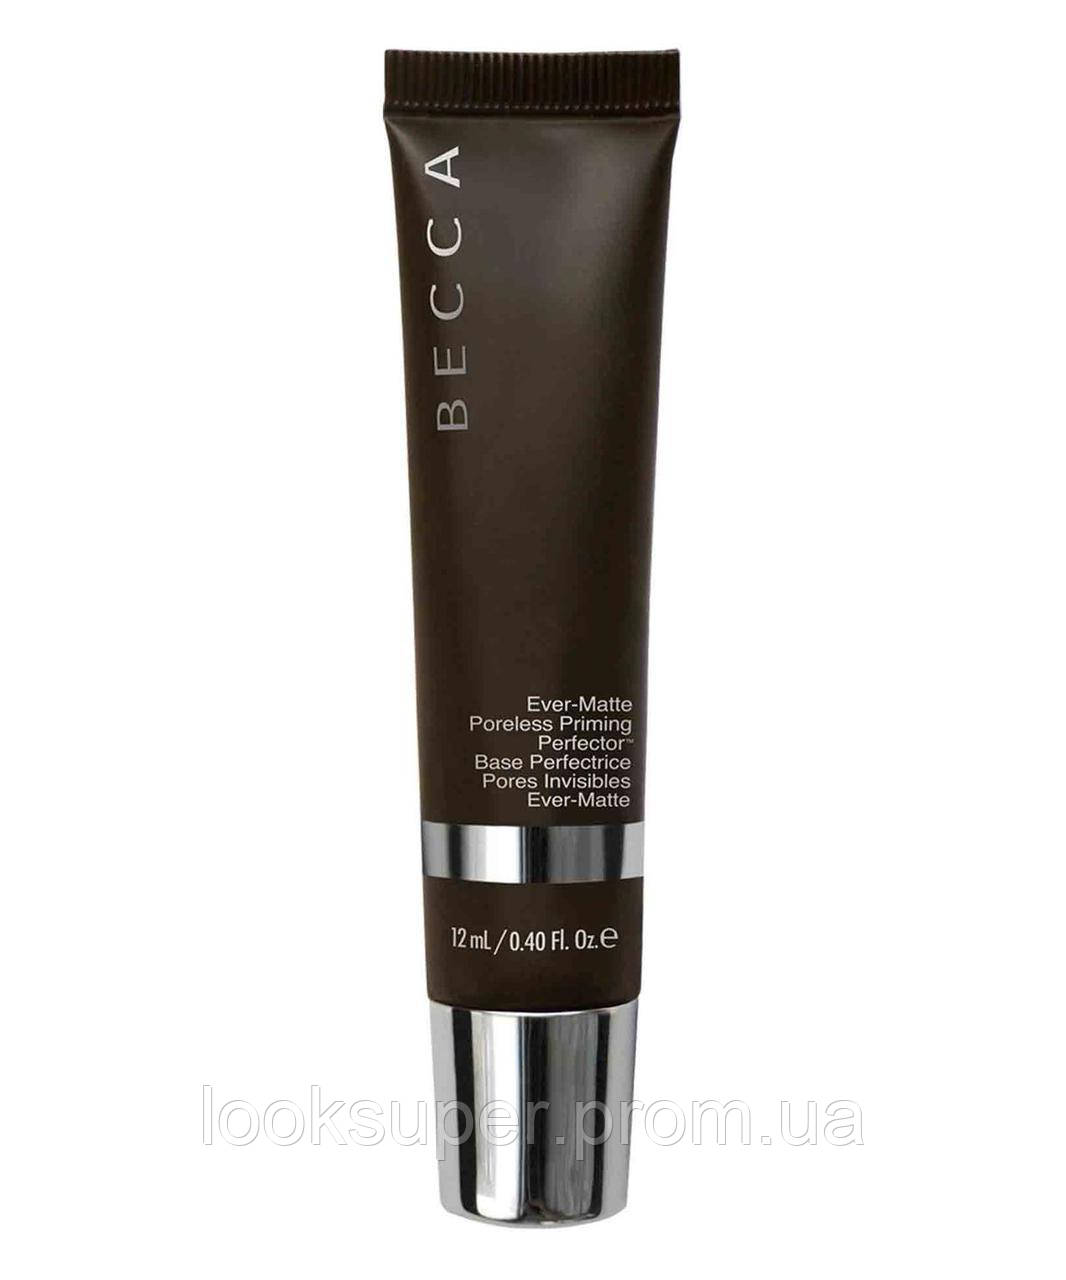 Матирующий праймер BECCA Ever Matte Poreless Priming Perfector  (12 мл)